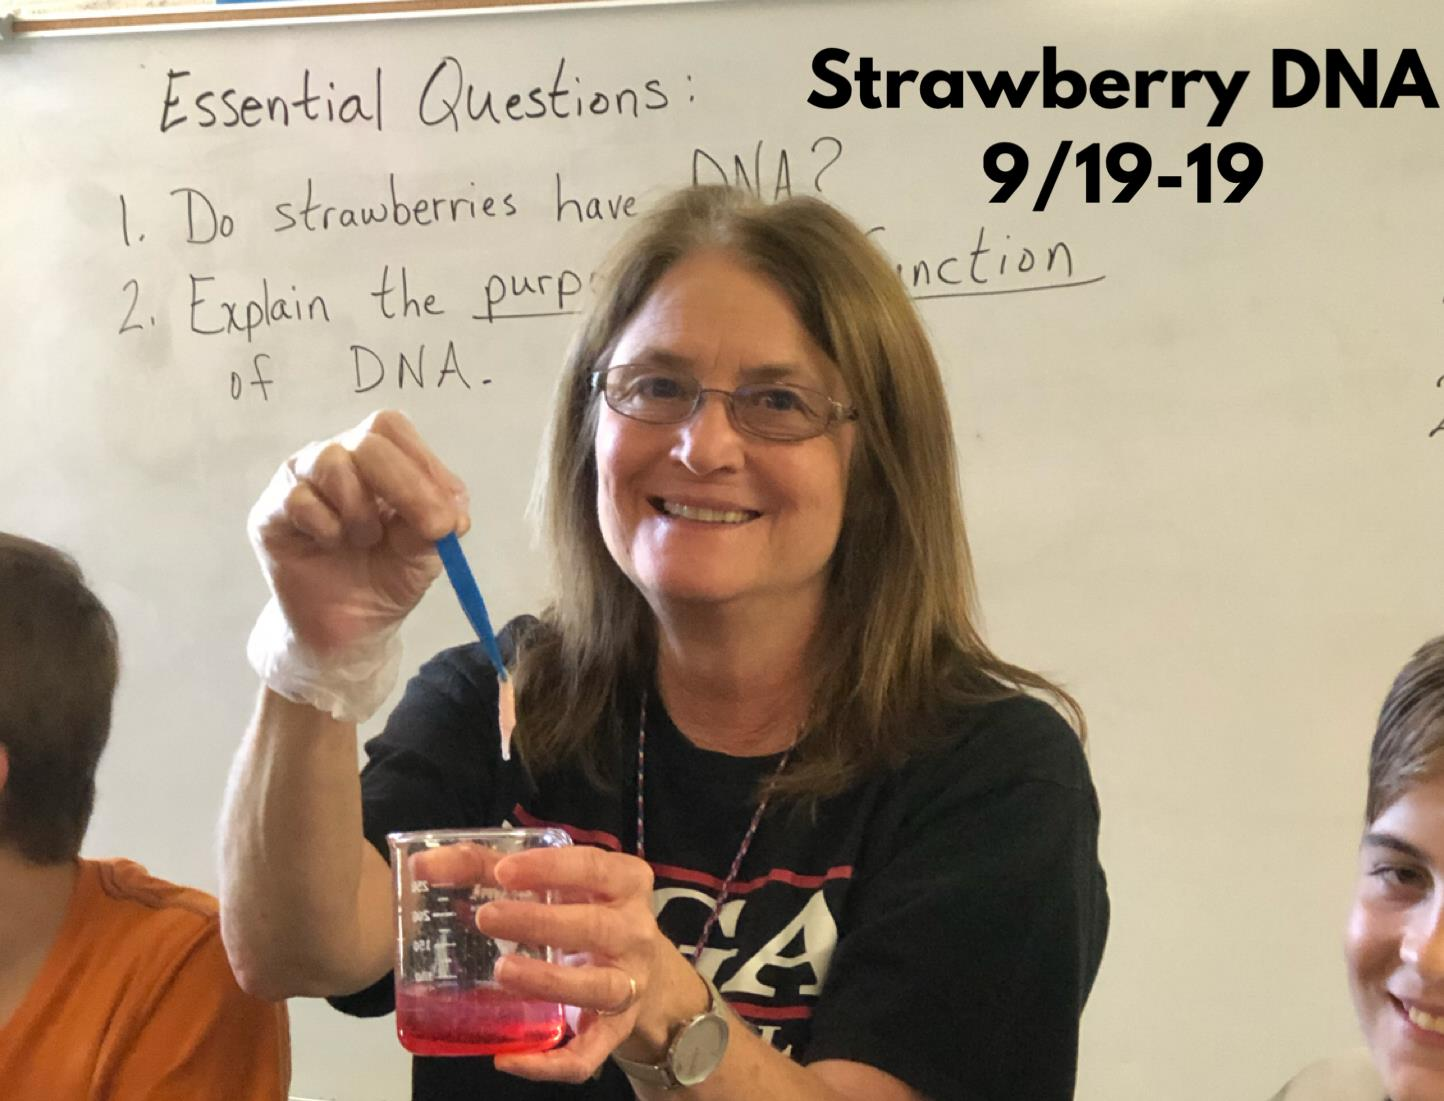 Cook Strawberry DNA